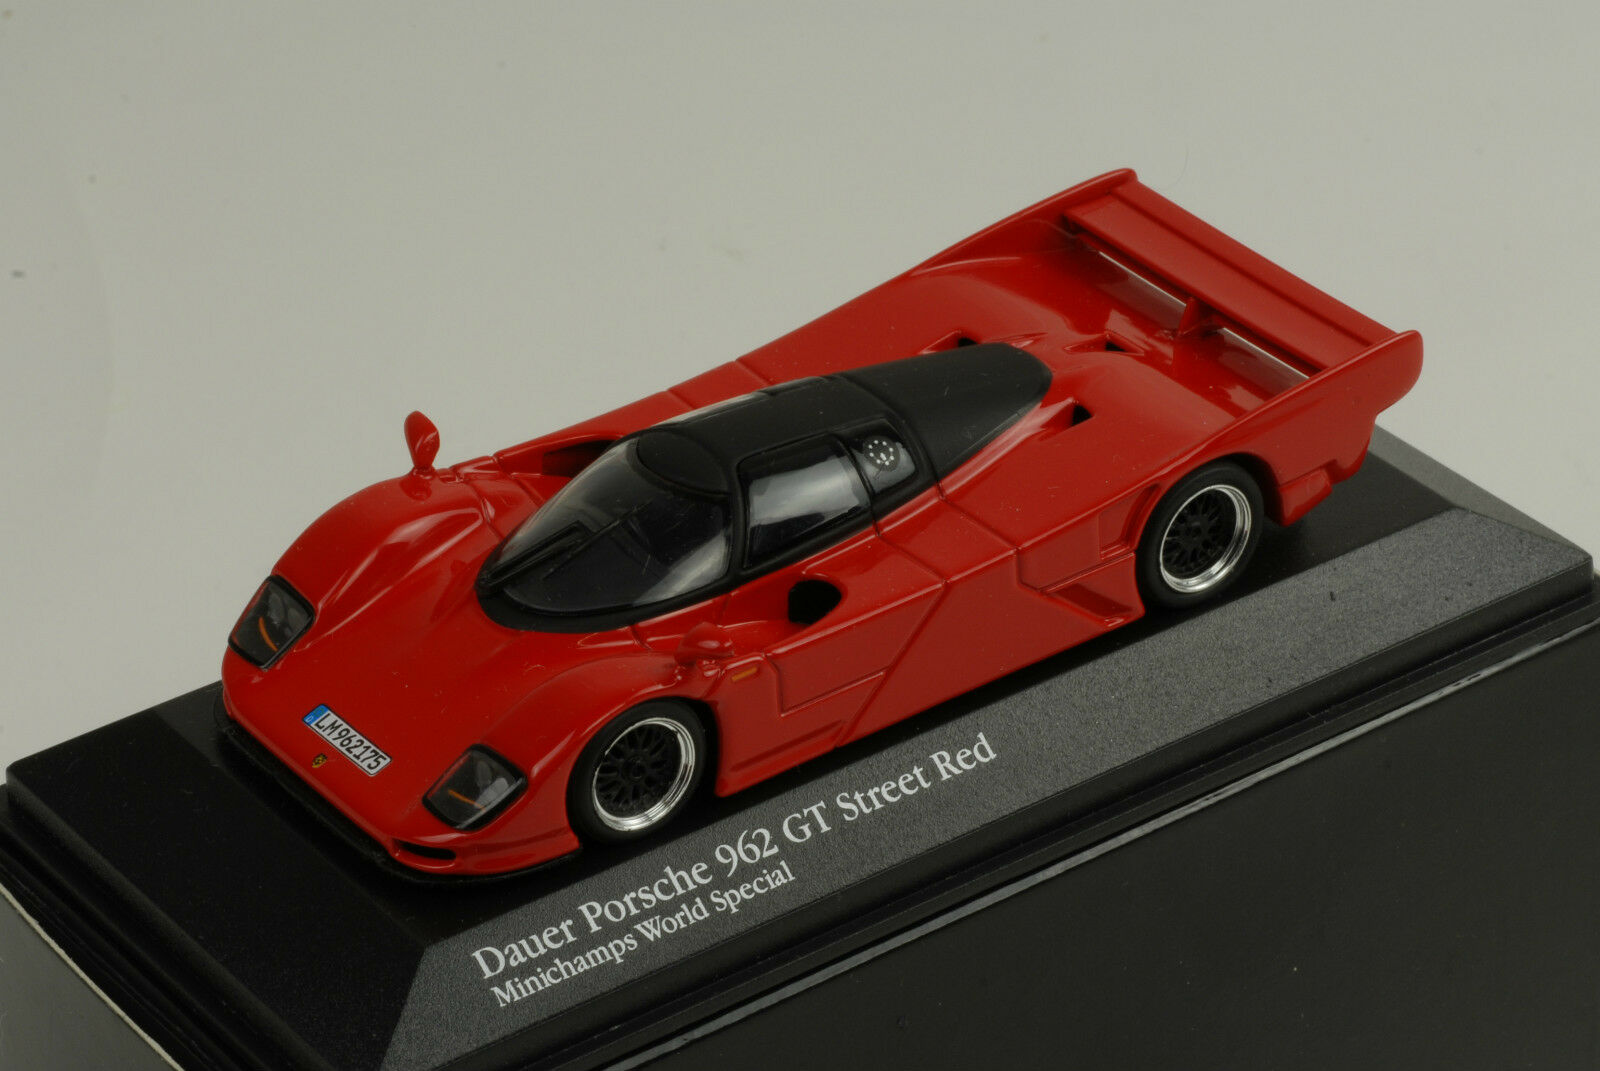 Porsche 962 GT STREET RED WORLD SPECIAL 1 43 Minichamps